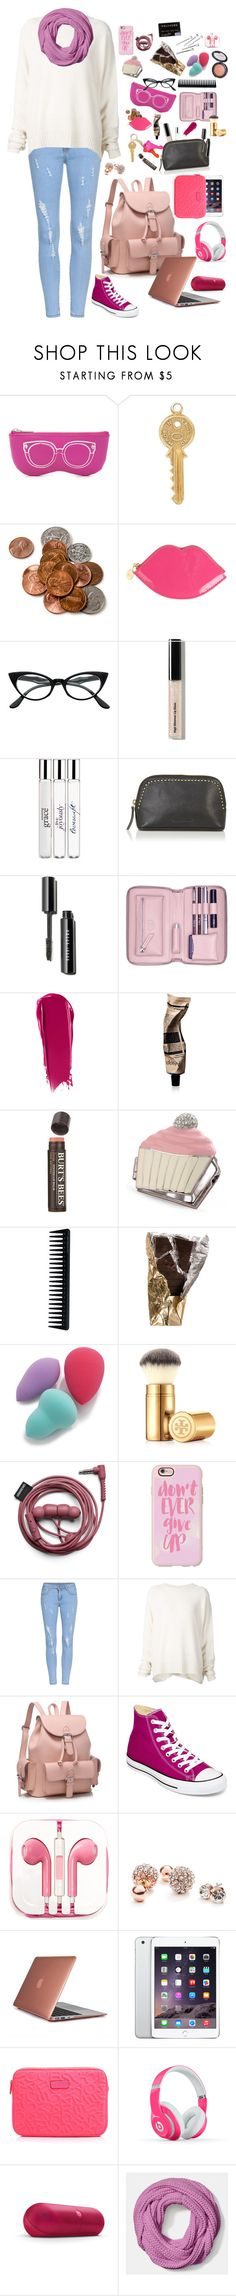 """""""Don't Ever Give Up"""" by sportinggirl00 ❤ liked on Polyvore featuring Rebecca Minkoff, Annina Vogel, Lulu Guinness, Kate Spade, Retrò, Bobbi Brown Cosmetics, philosophy, Warehouse, Lili Radu and NARS Cosmetics"""